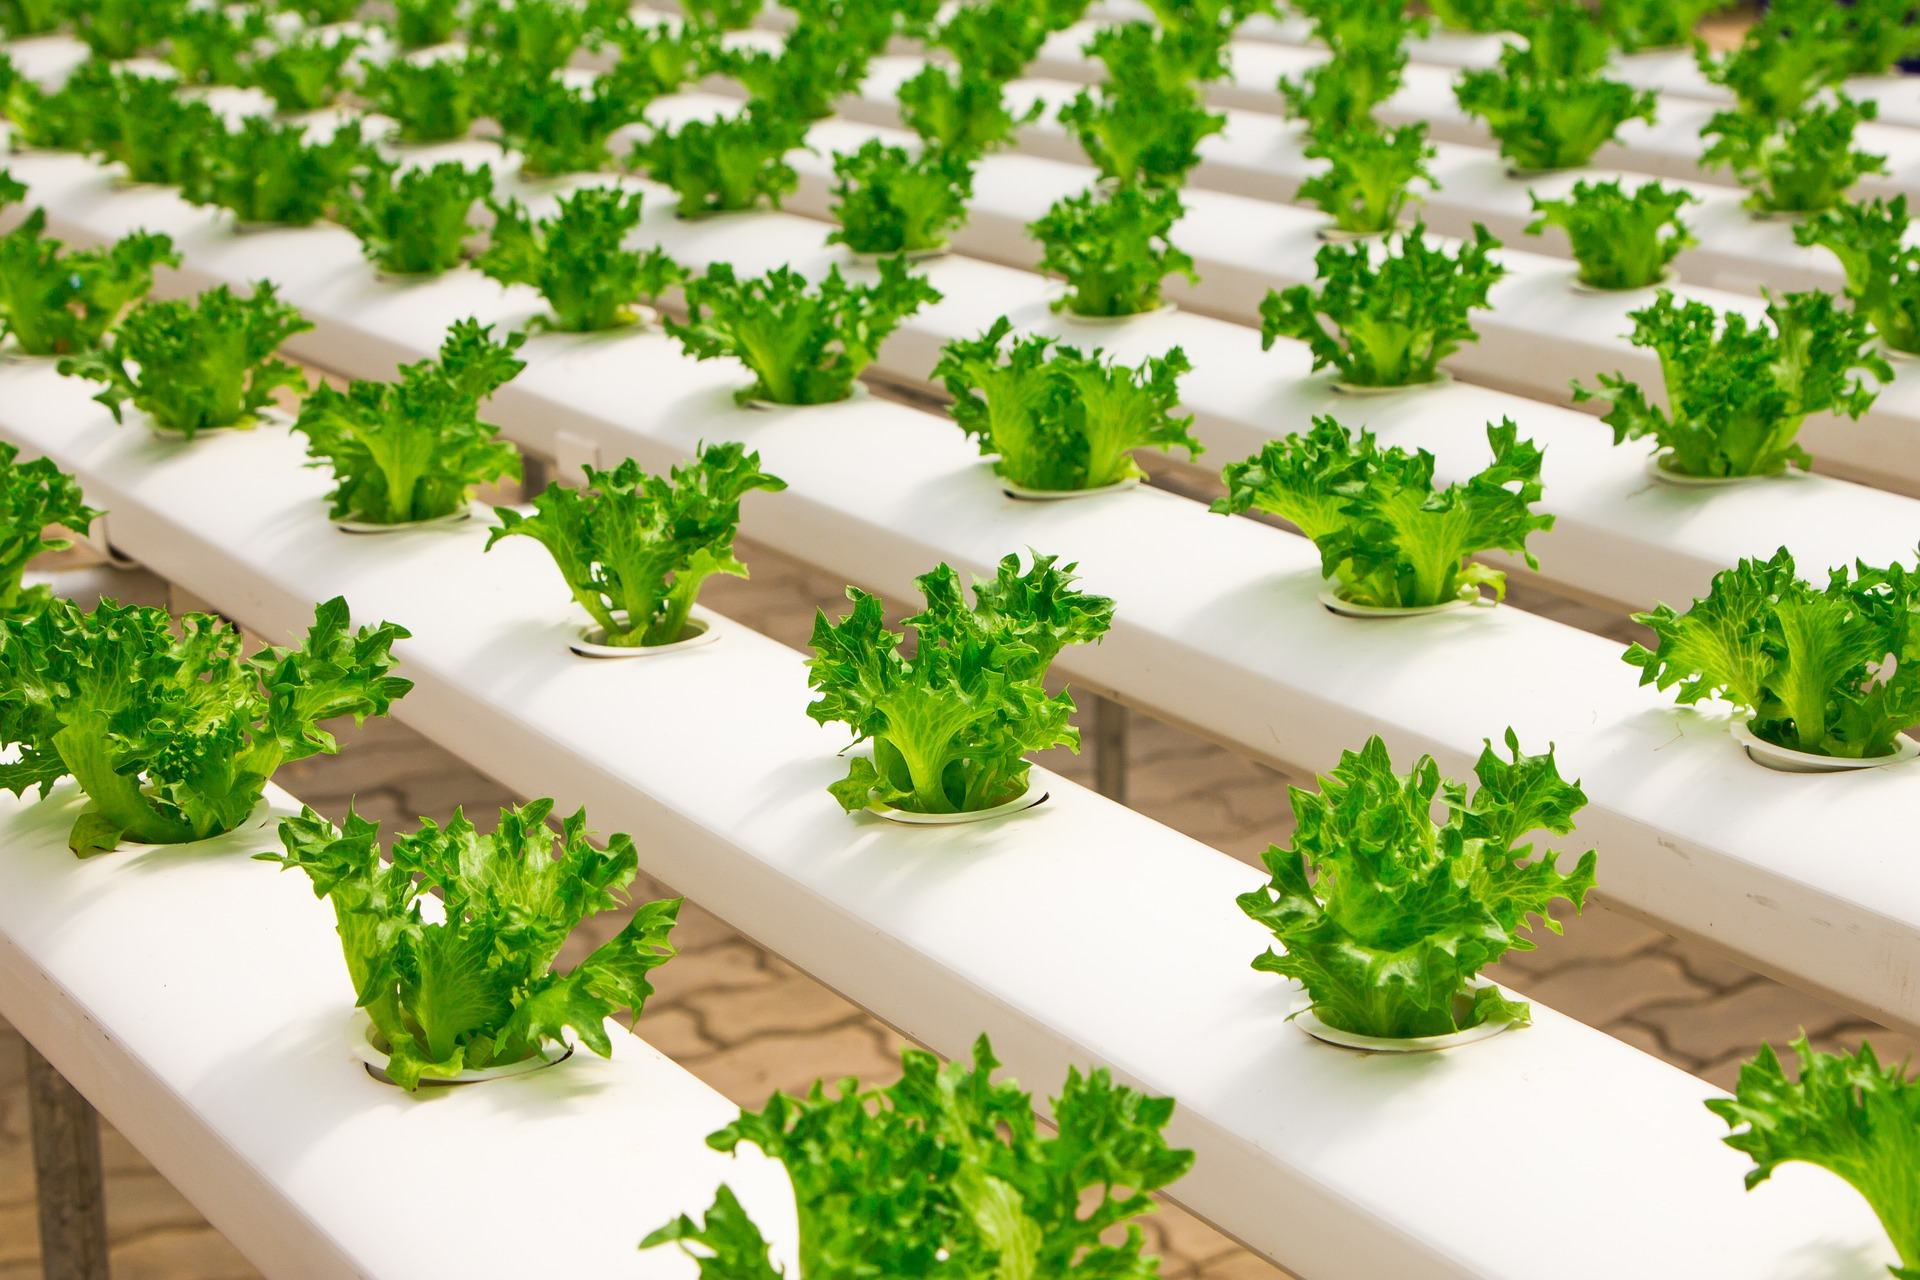 PROTECTION AGAINST HARMFUL PATHOGENS - Indoor grow and extraction facilities must effectively deal with harmful microorganisms, both known and unknown, which may threaten the health of their plants and the quality of their products that ultimately impact the health and wellness of consumers.